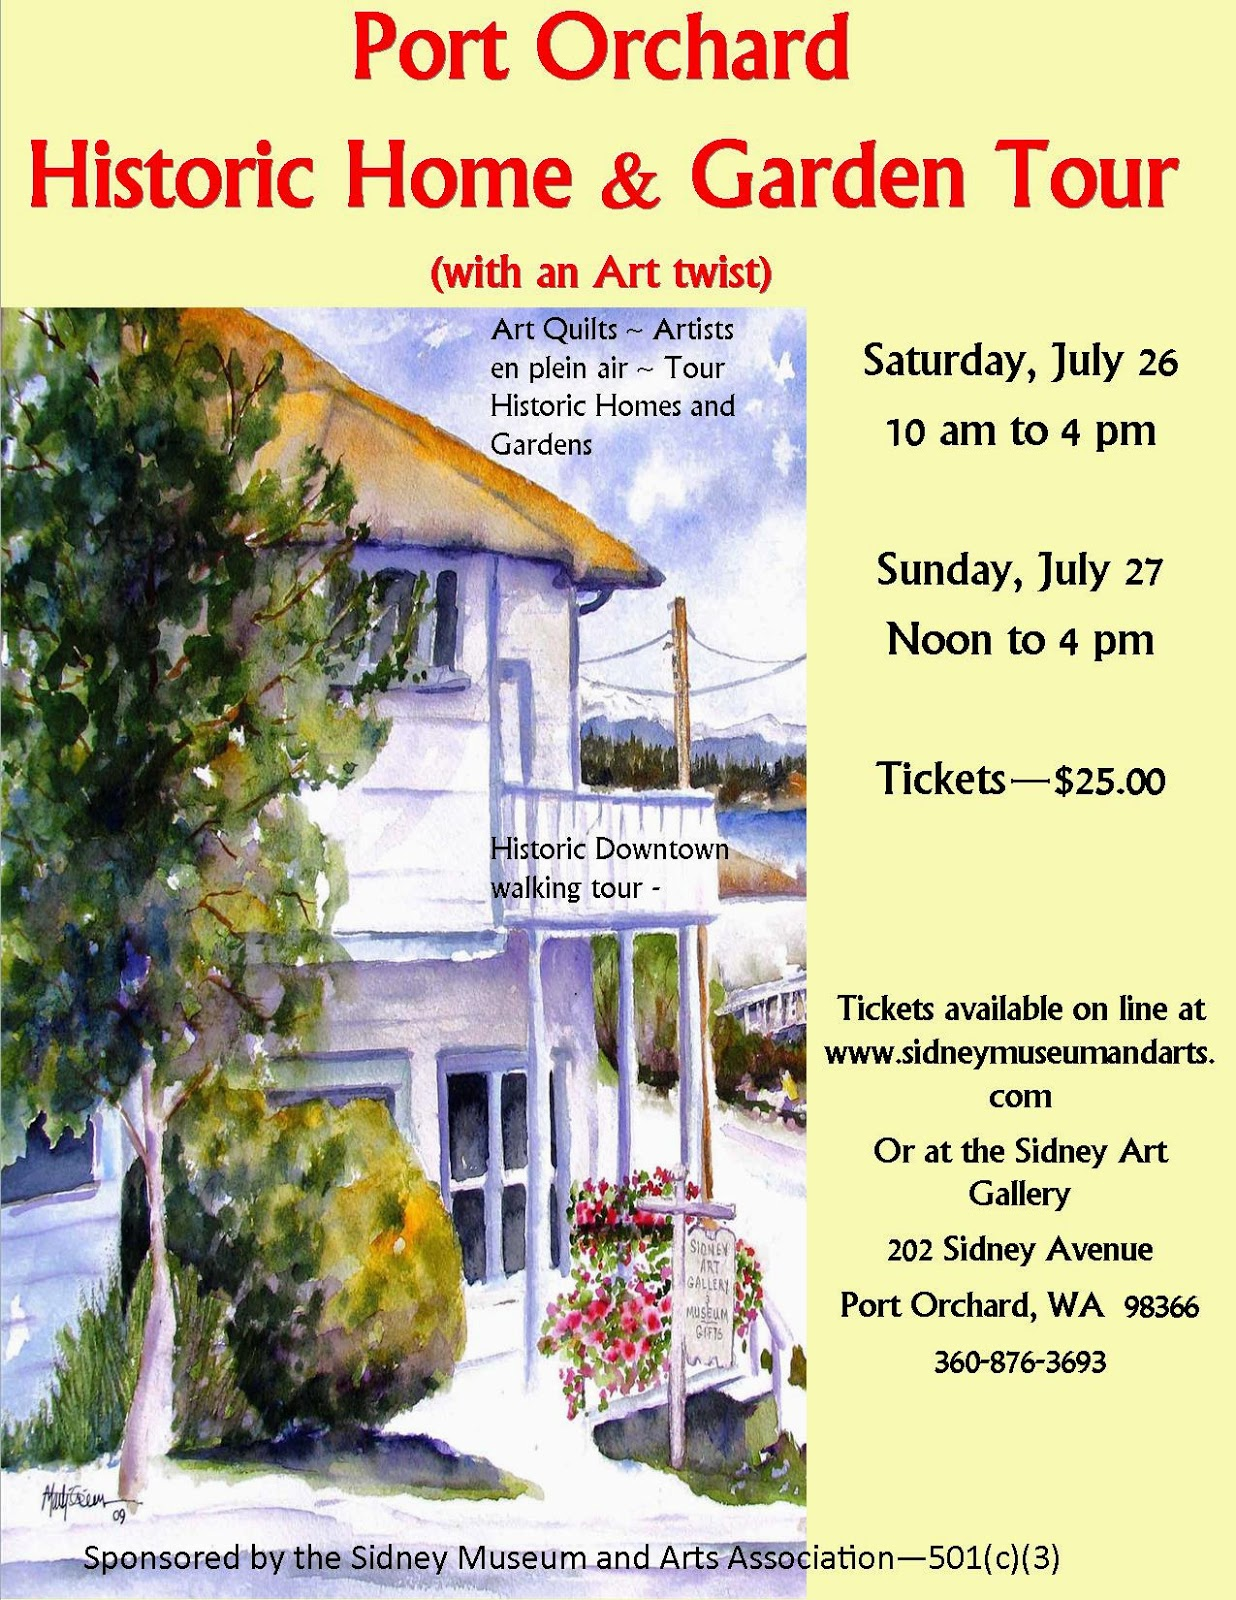 http://www.sidneymuseumandarts.com/news/port-orchard-historic-home-and-garden-tour-with-an-art-twist.html